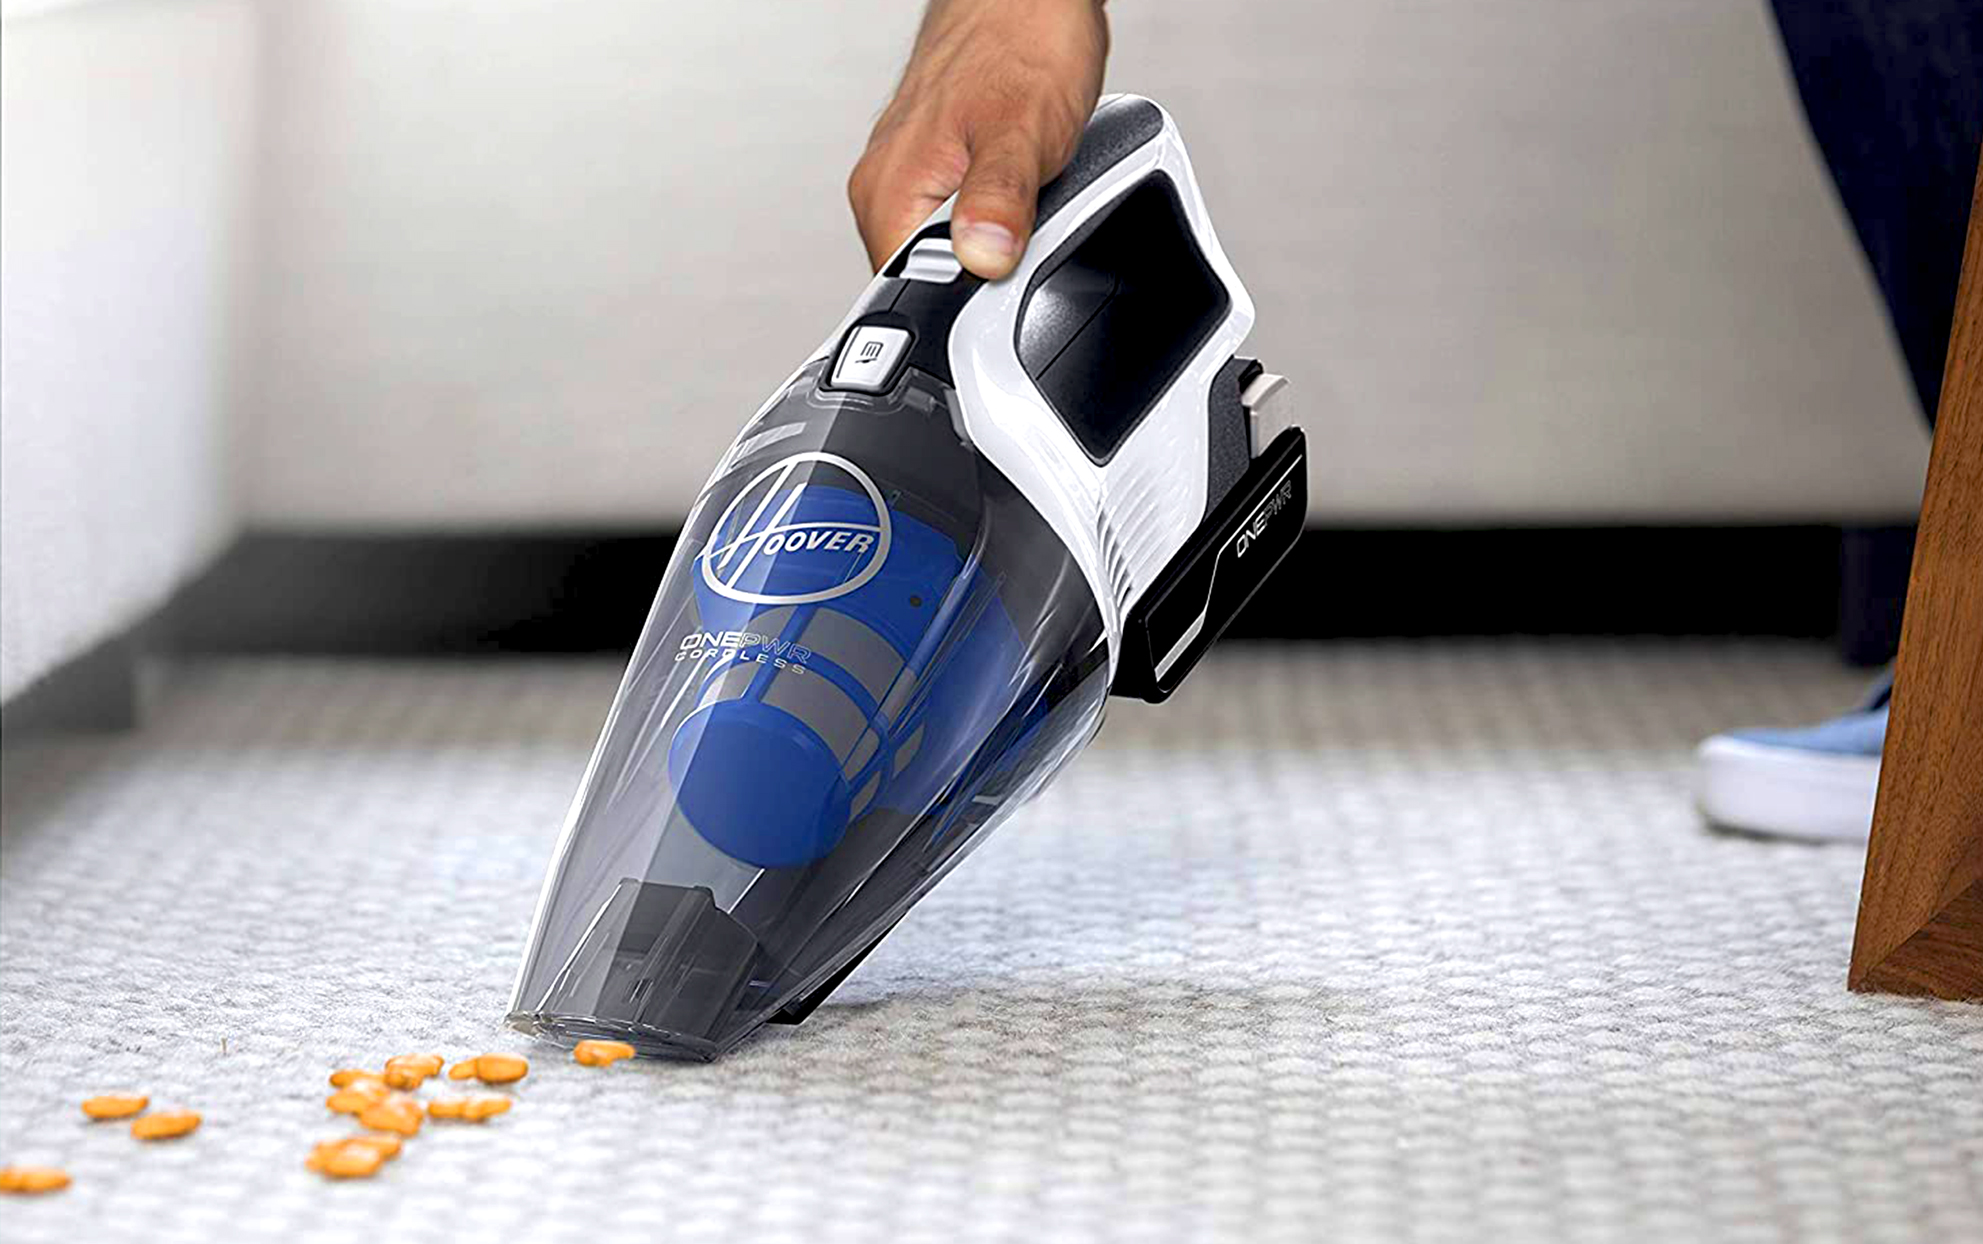 Hoover brand handheld vacuum being used on a carpeted floor